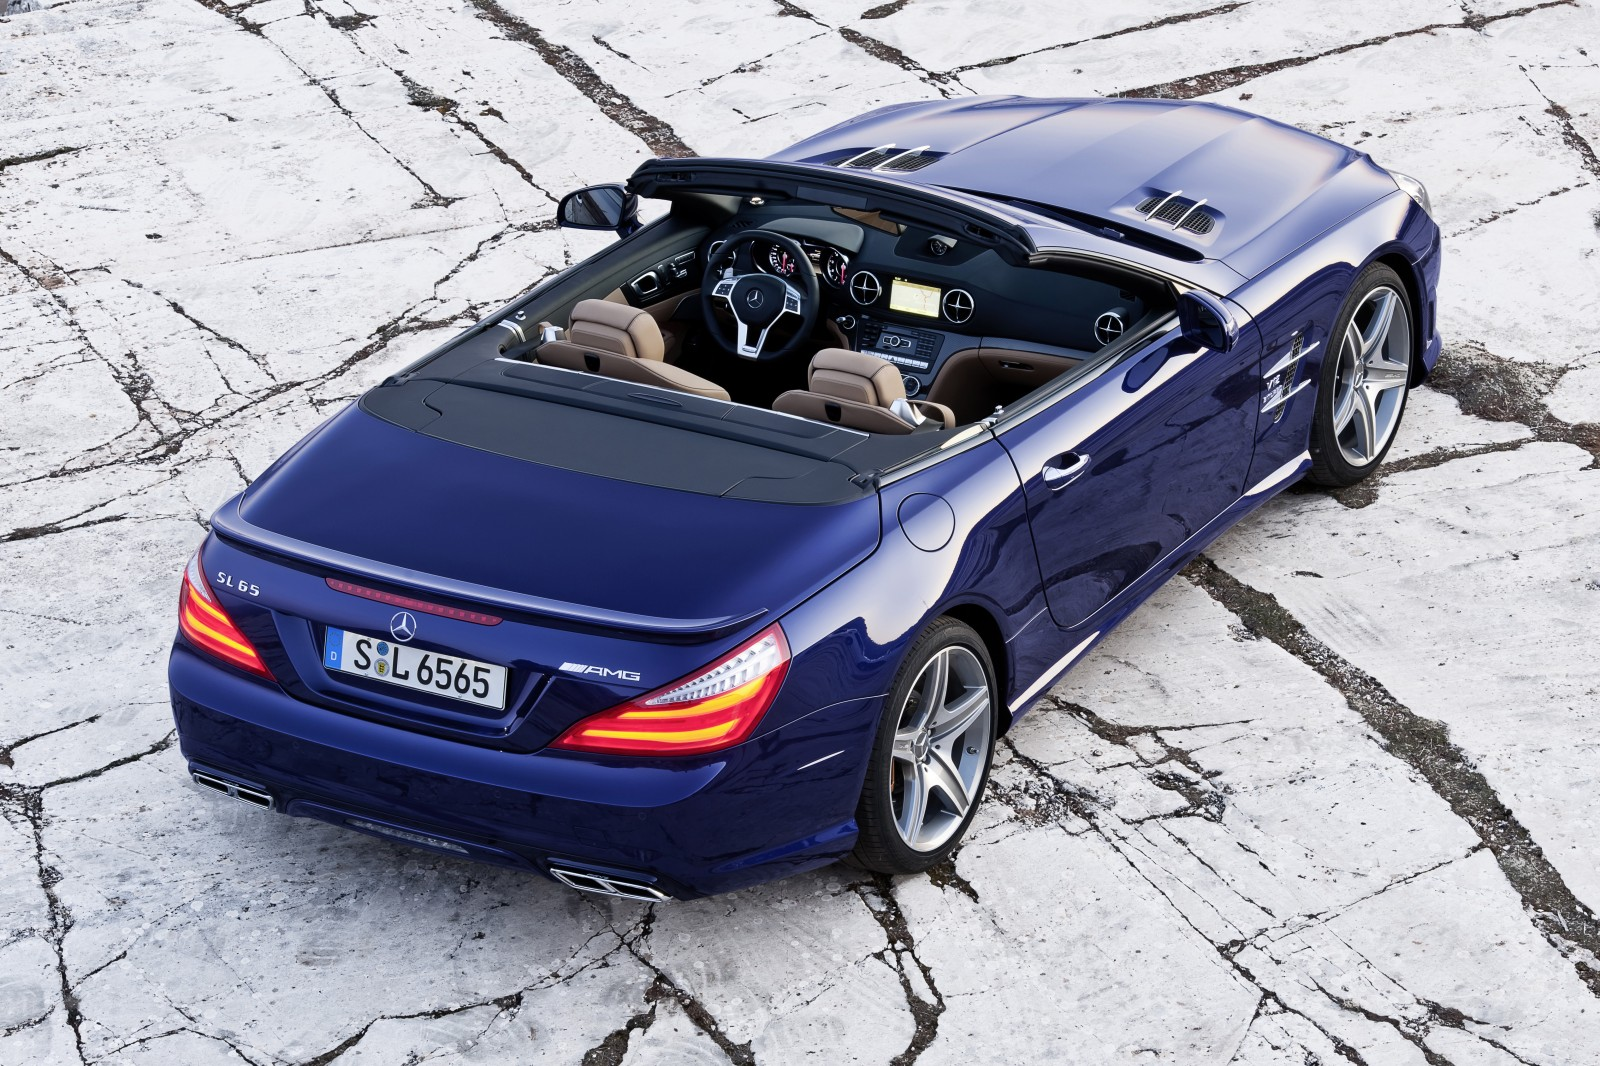 2013 mercedes benz sl class amg blue color cool cars. Black Bedroom Furniture Sets. Home Design Ideas